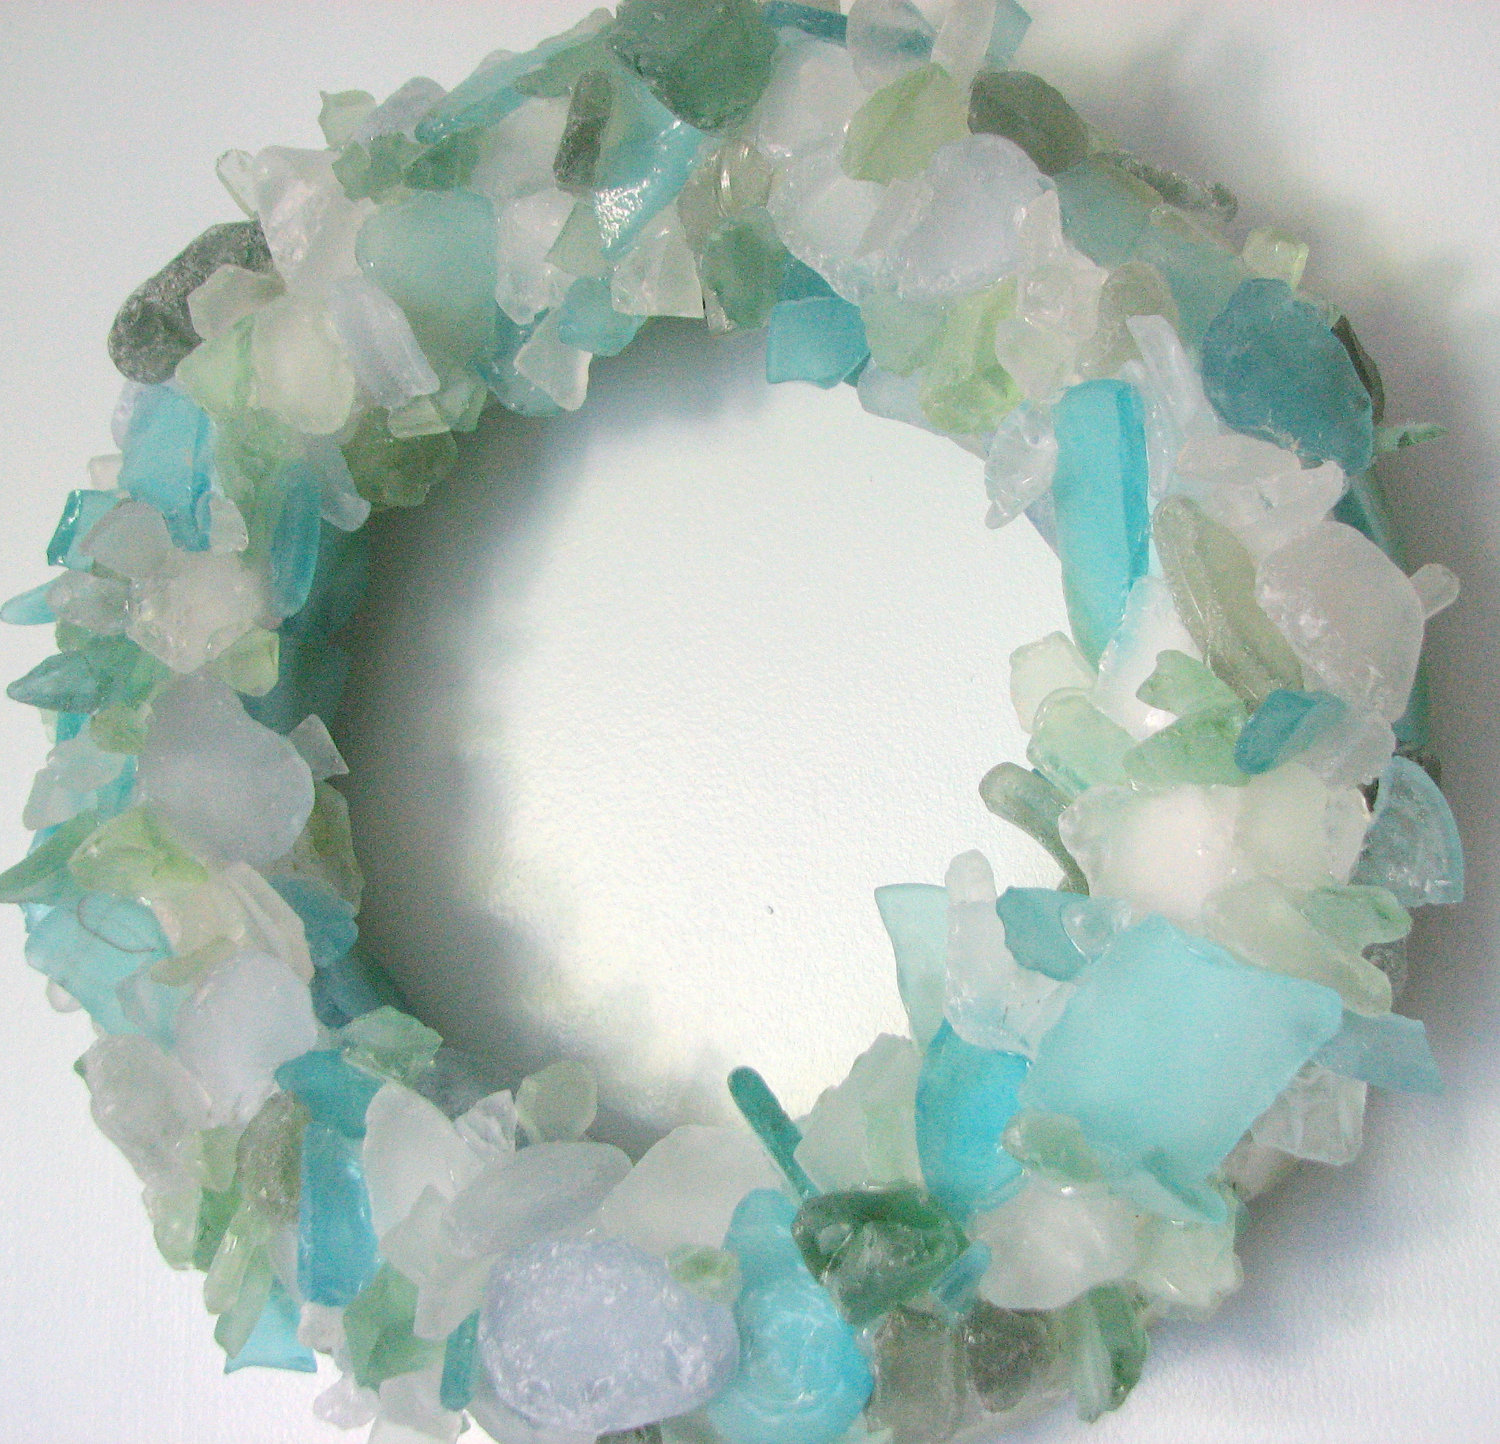 Beach Decor Sea Glass Wreath   Nautical Beach Glass Wreath For Table Or Wall